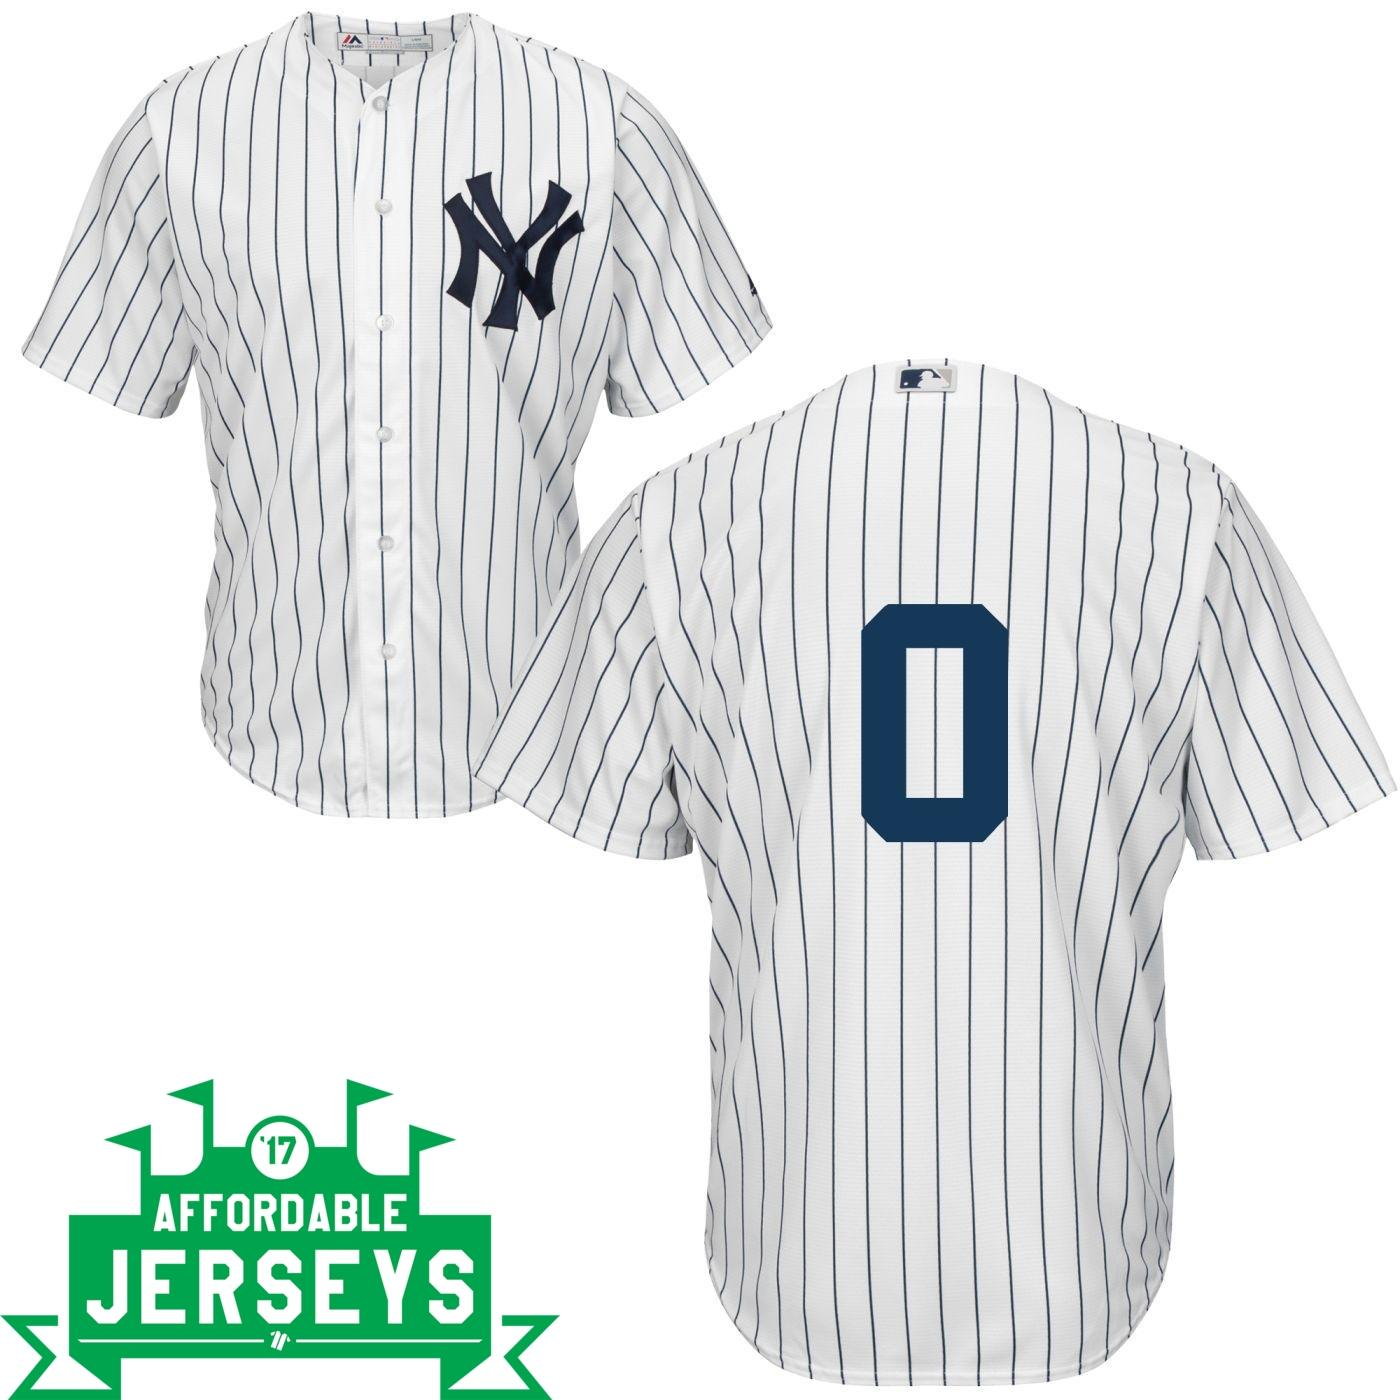 Adam Ottavino Home Cool Base Player Jersey - AffordableJerseys.com